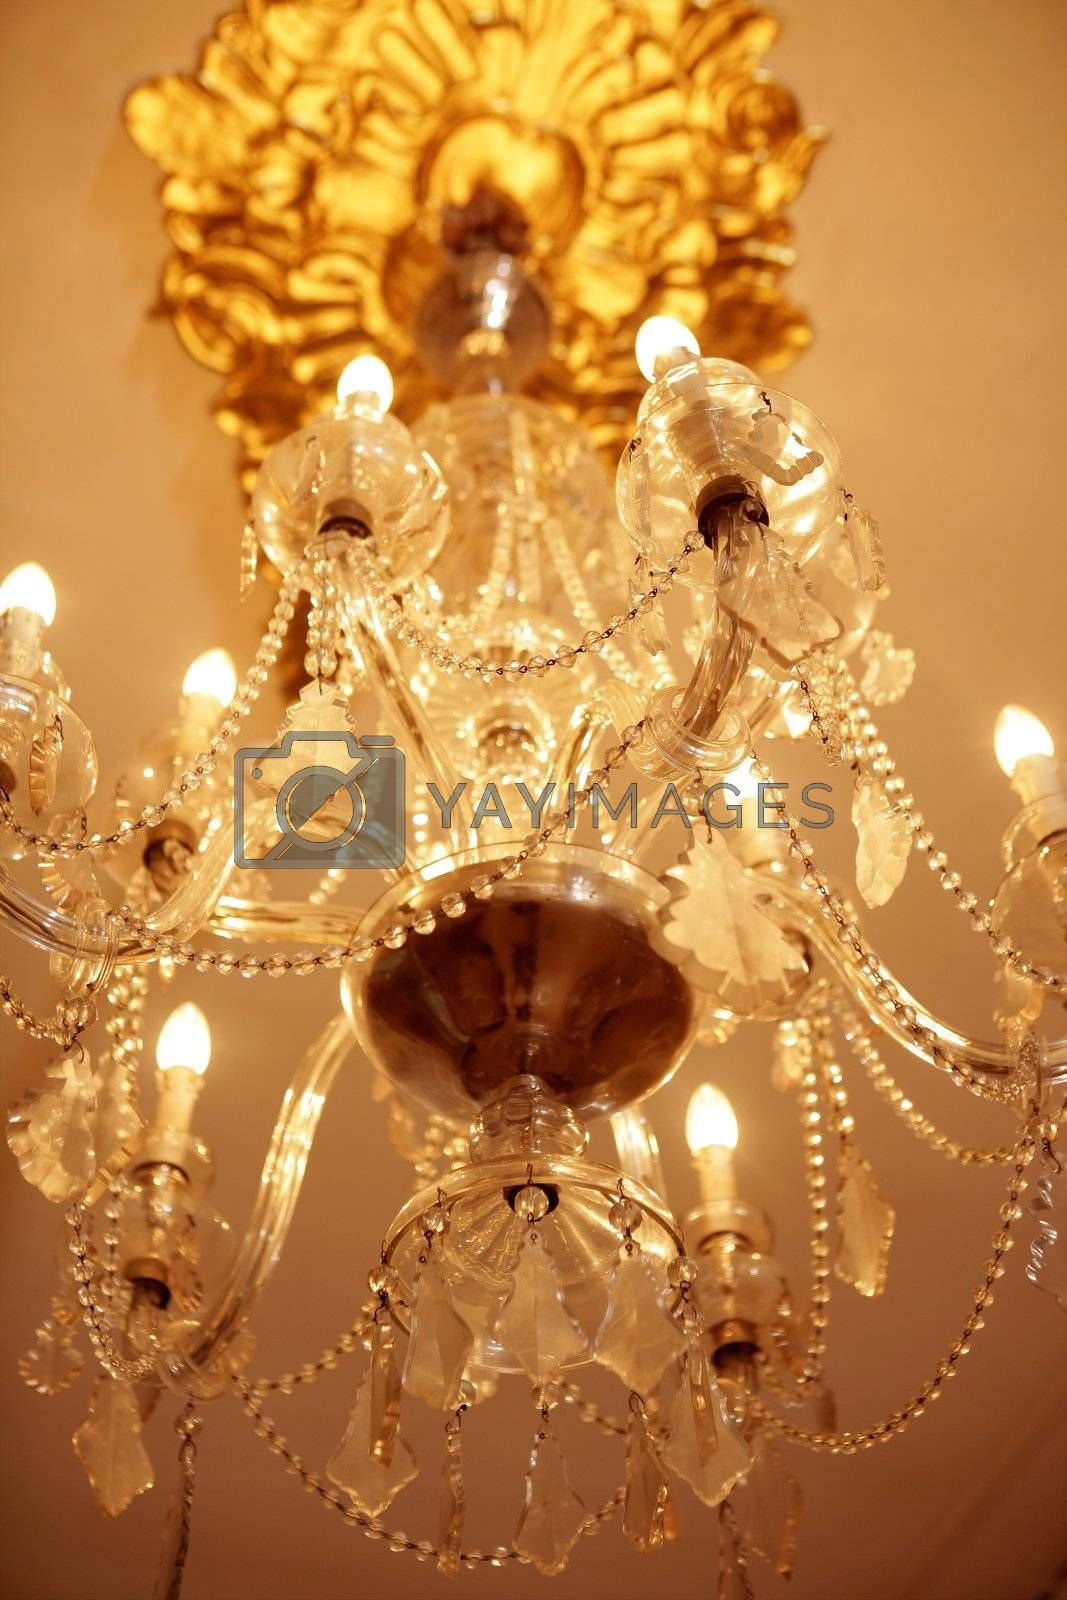 Royalty free image of Old electric chandelier lamp by lunamarina